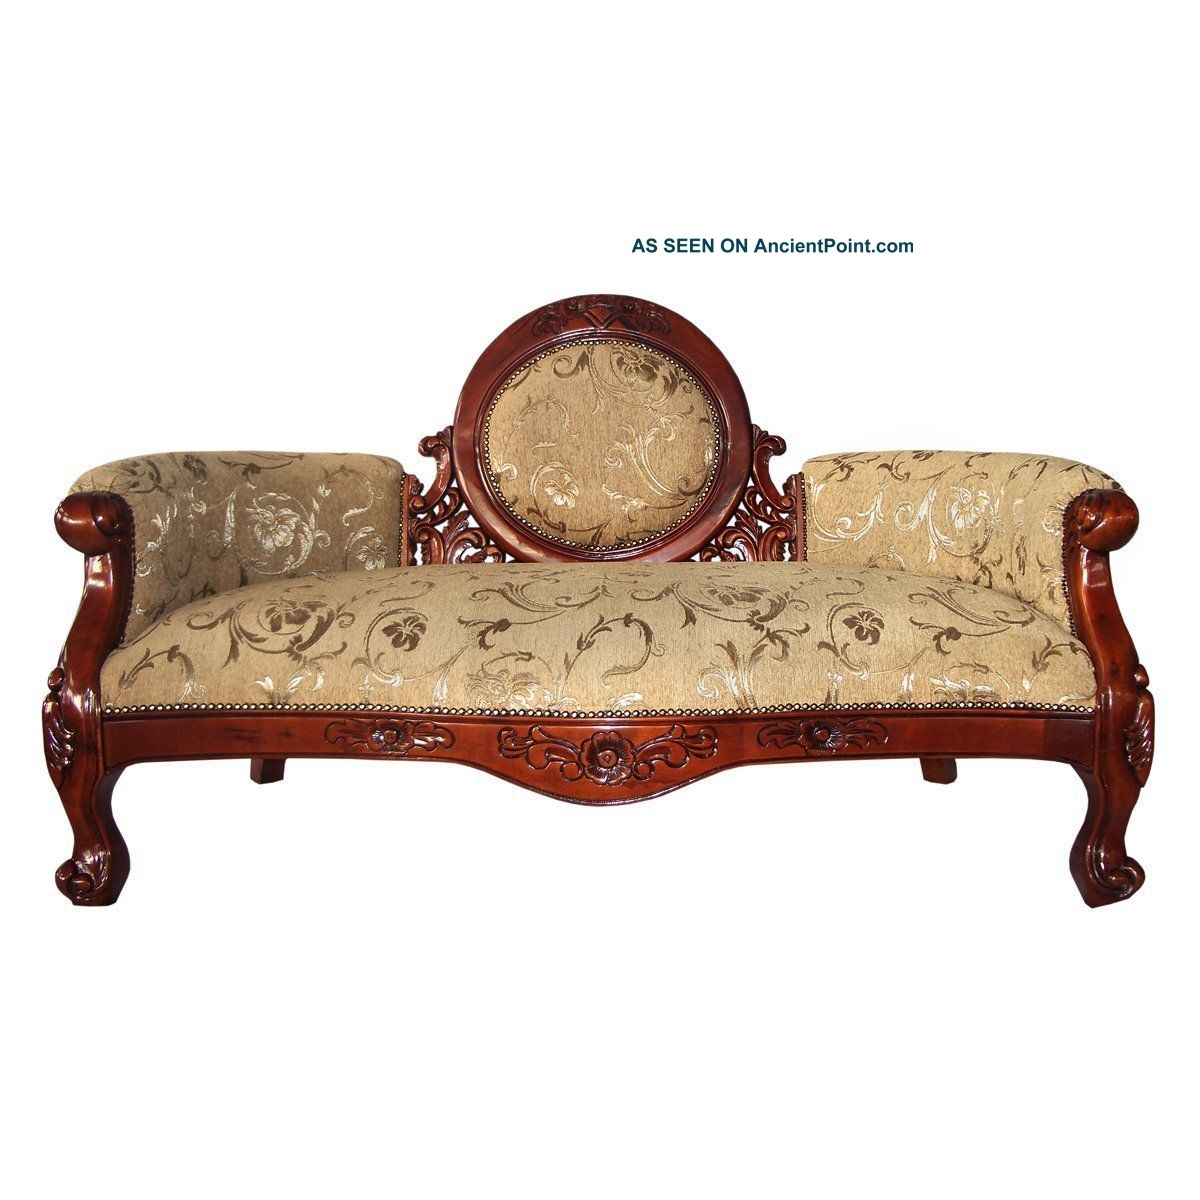 Ks1022 Victorian Cameo - Backed Sofa - Hand Carved Replica - 1800-1899 photo